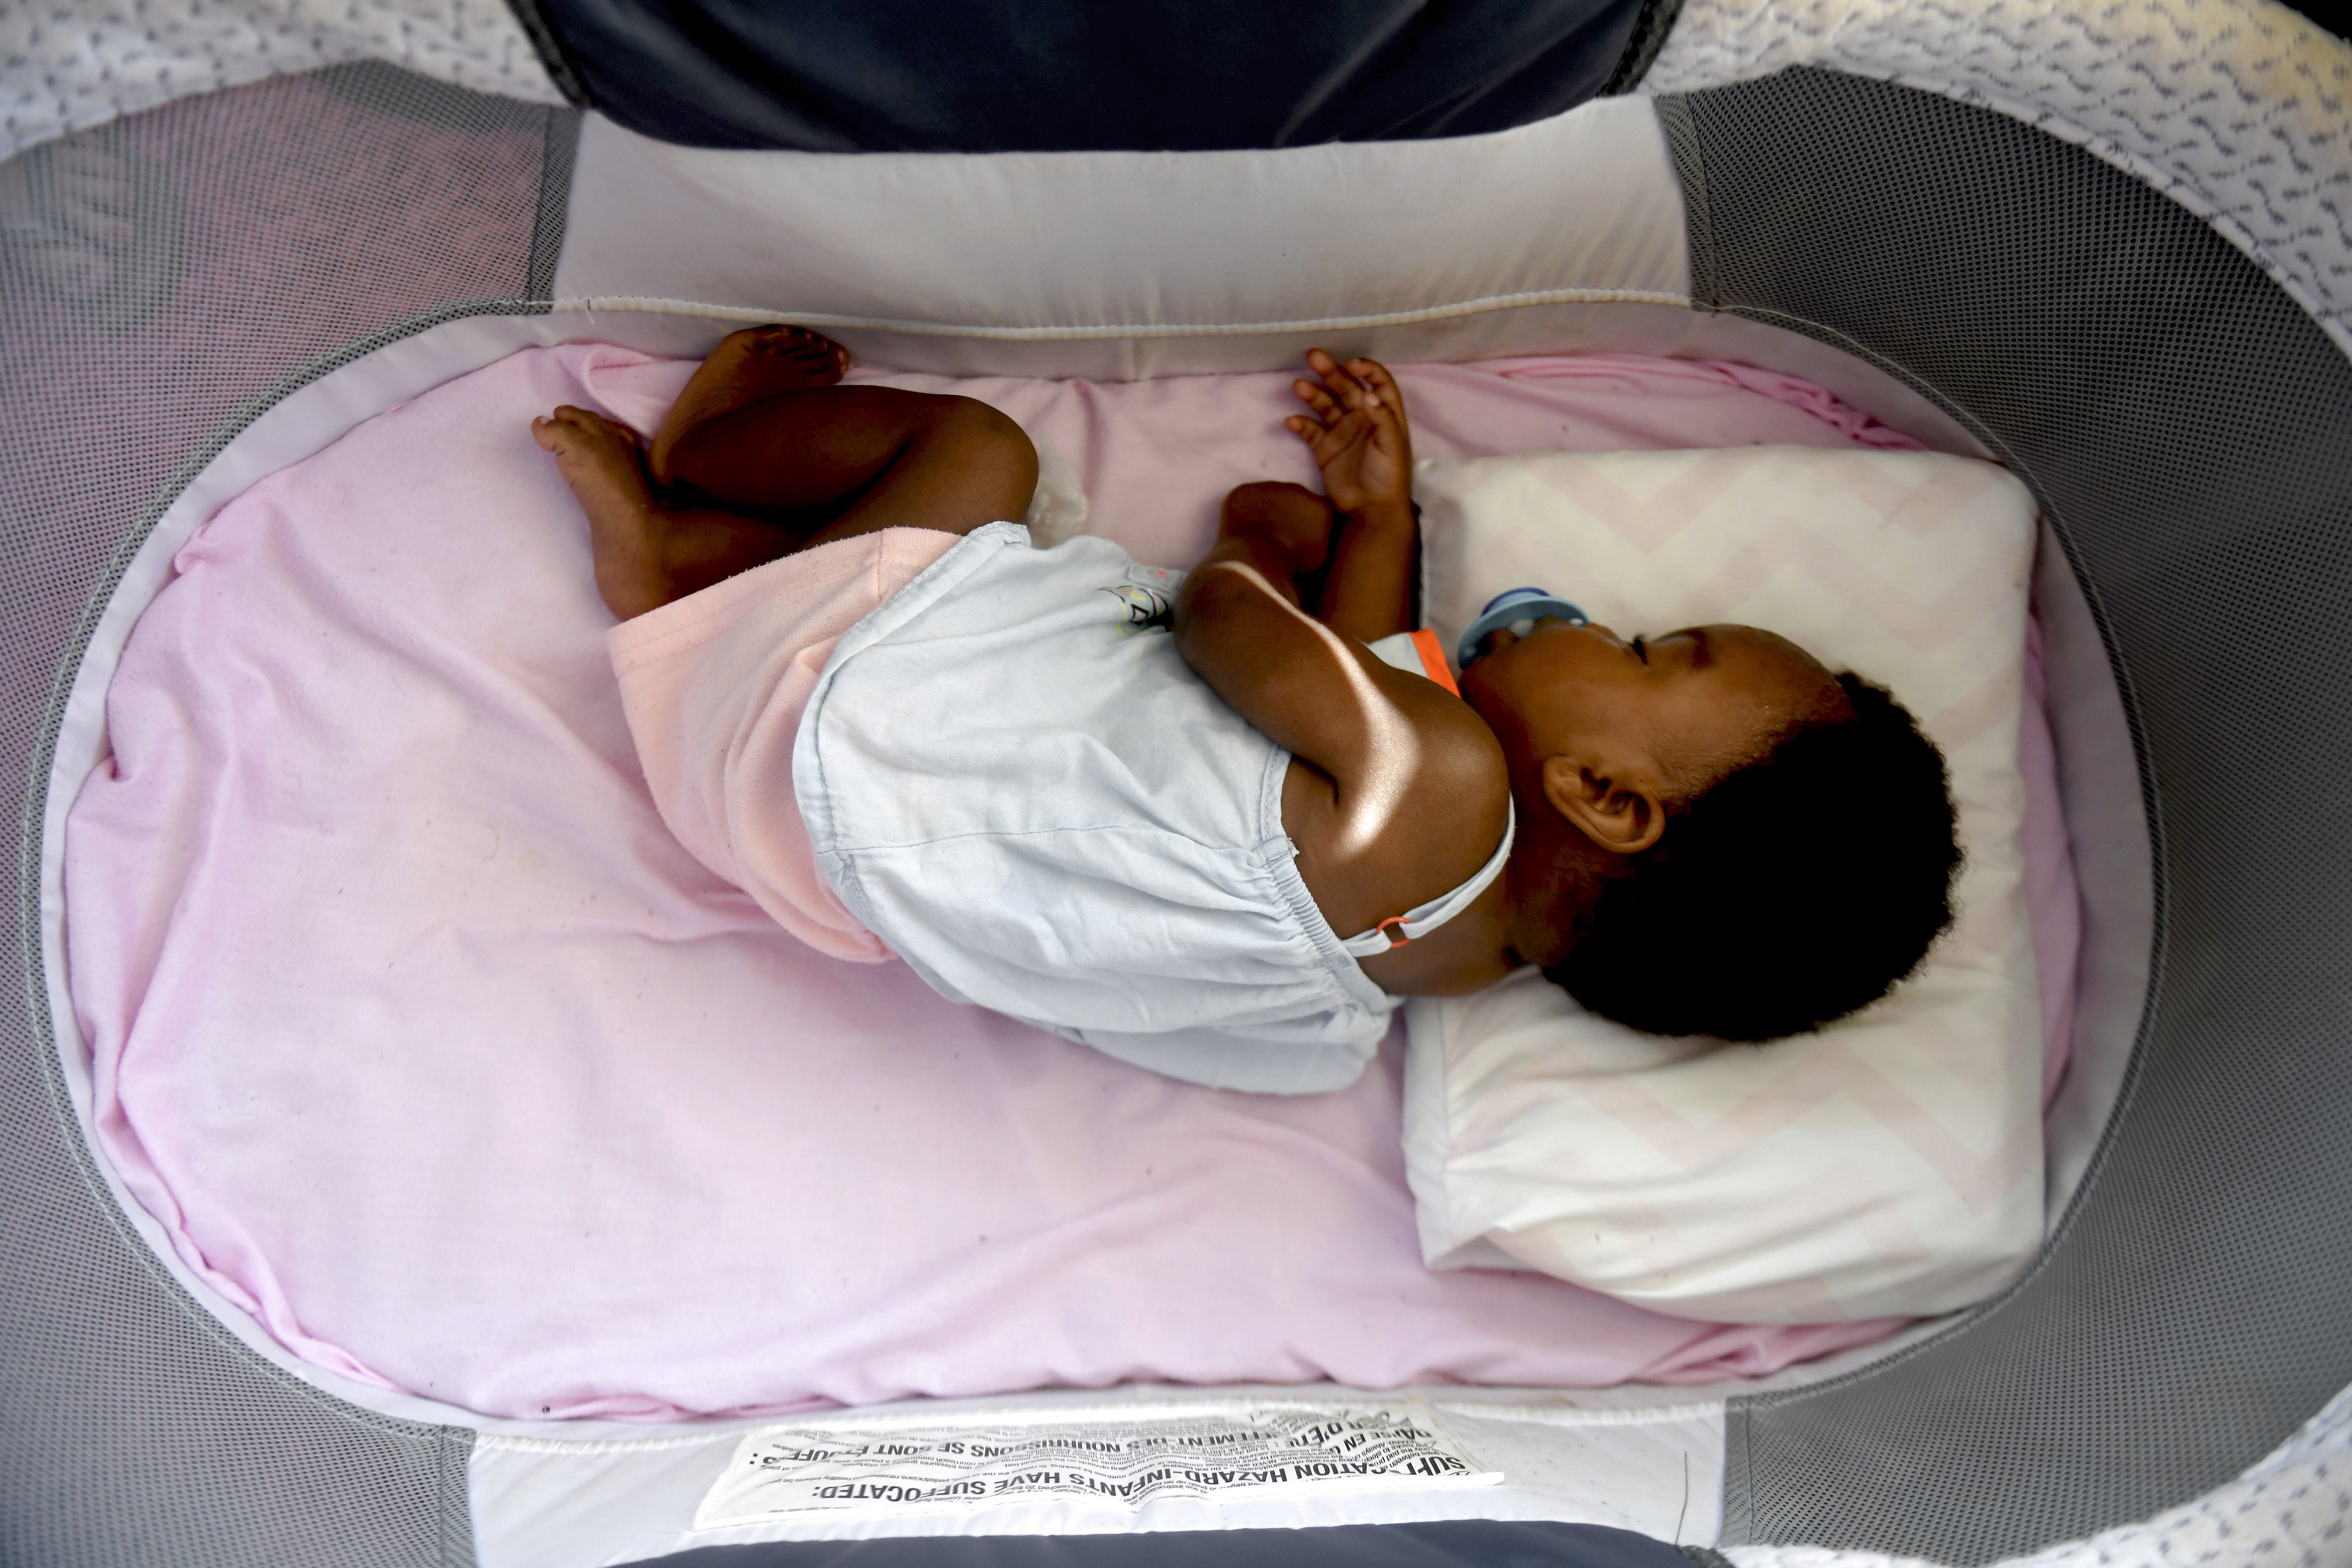 A rural home in KZN offers a glimmer of hope for terminally ill children